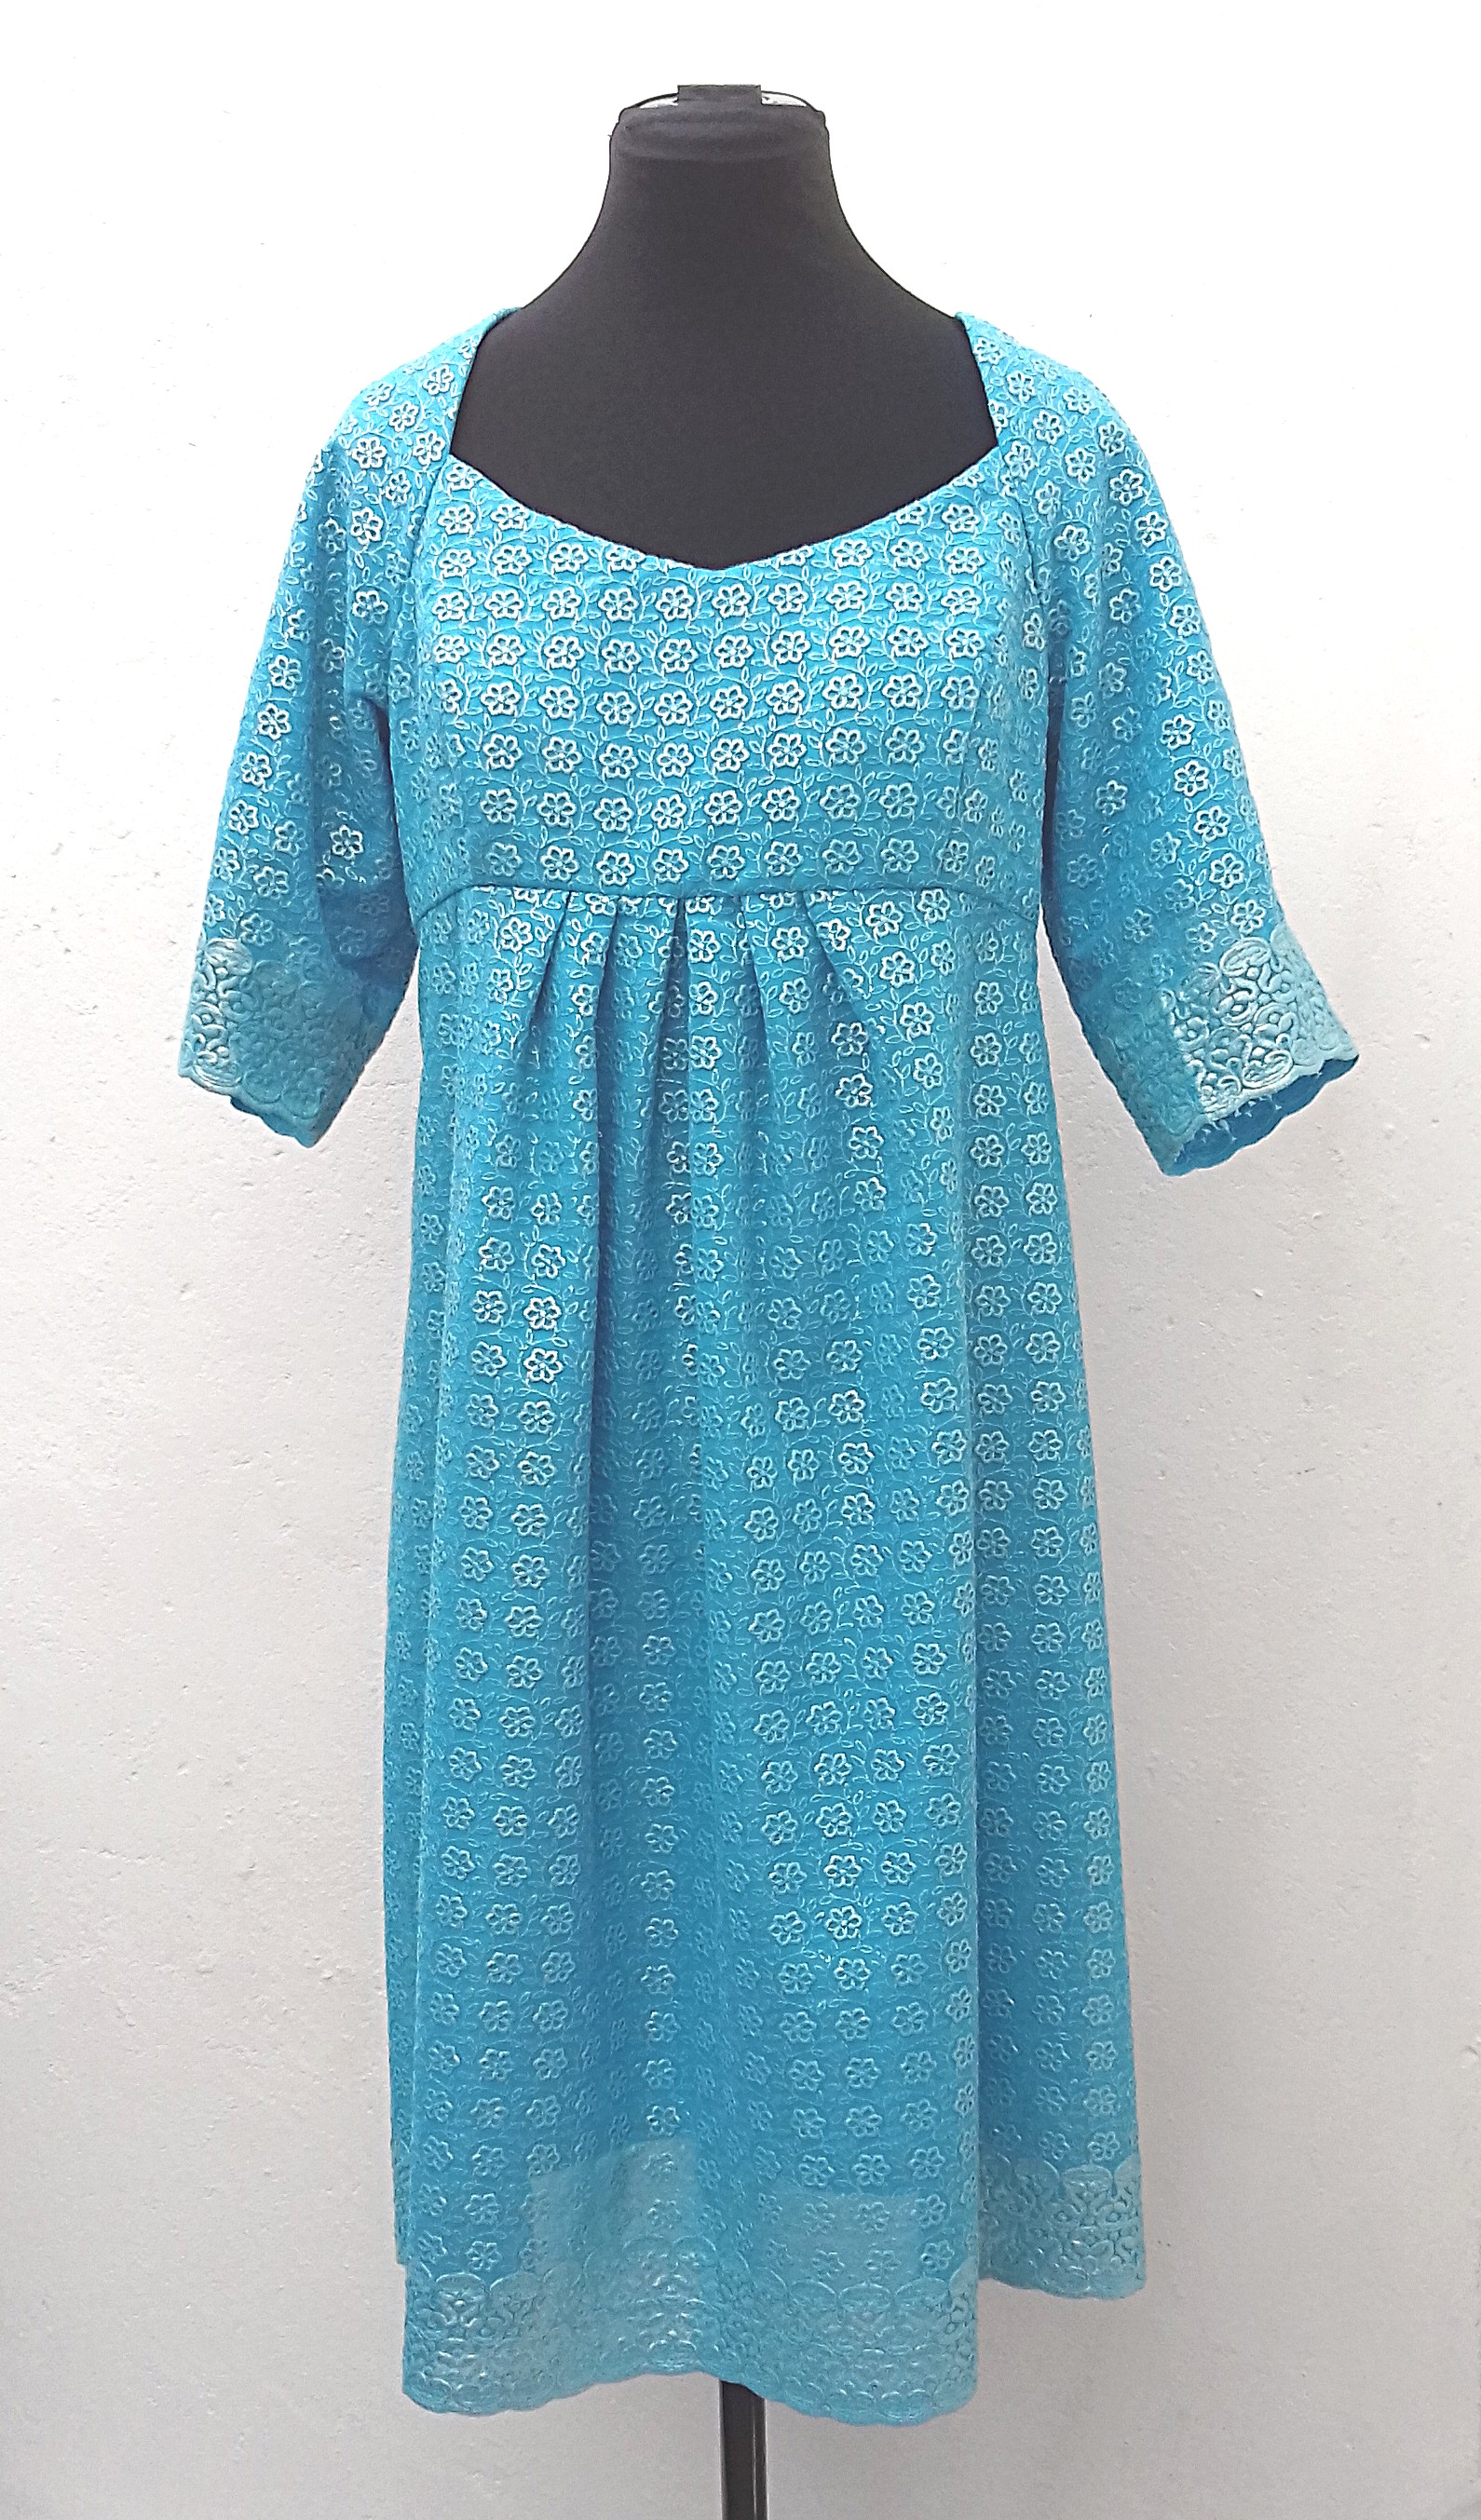 Calf-length-sky-blue-floral-embroidered-sheer-empire-line-mid-sleeved-dress